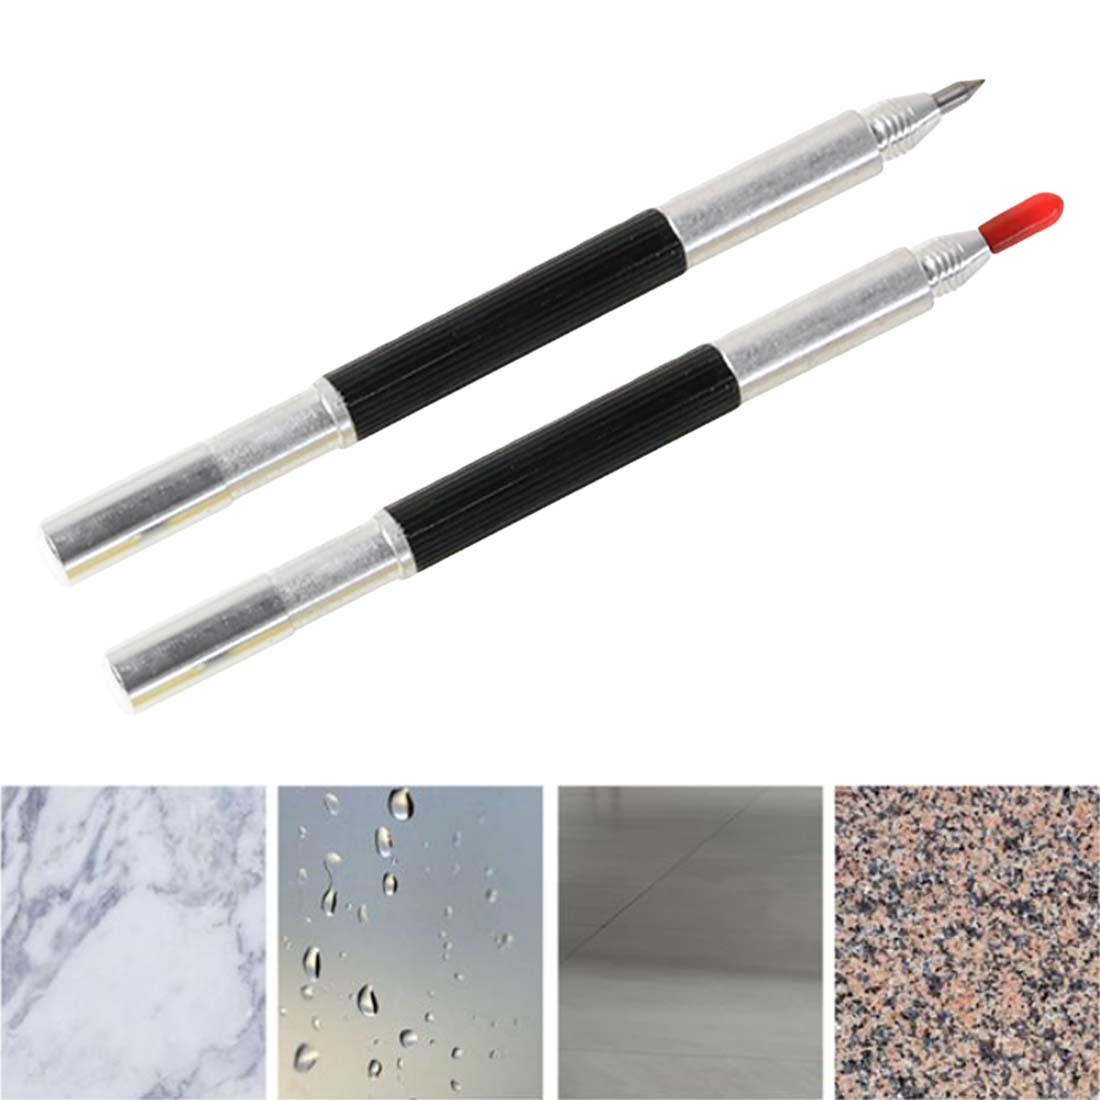 Glass Knife Glass Ceramic Marker Double Headed Glass Tile Cutter Construction Tool Parts